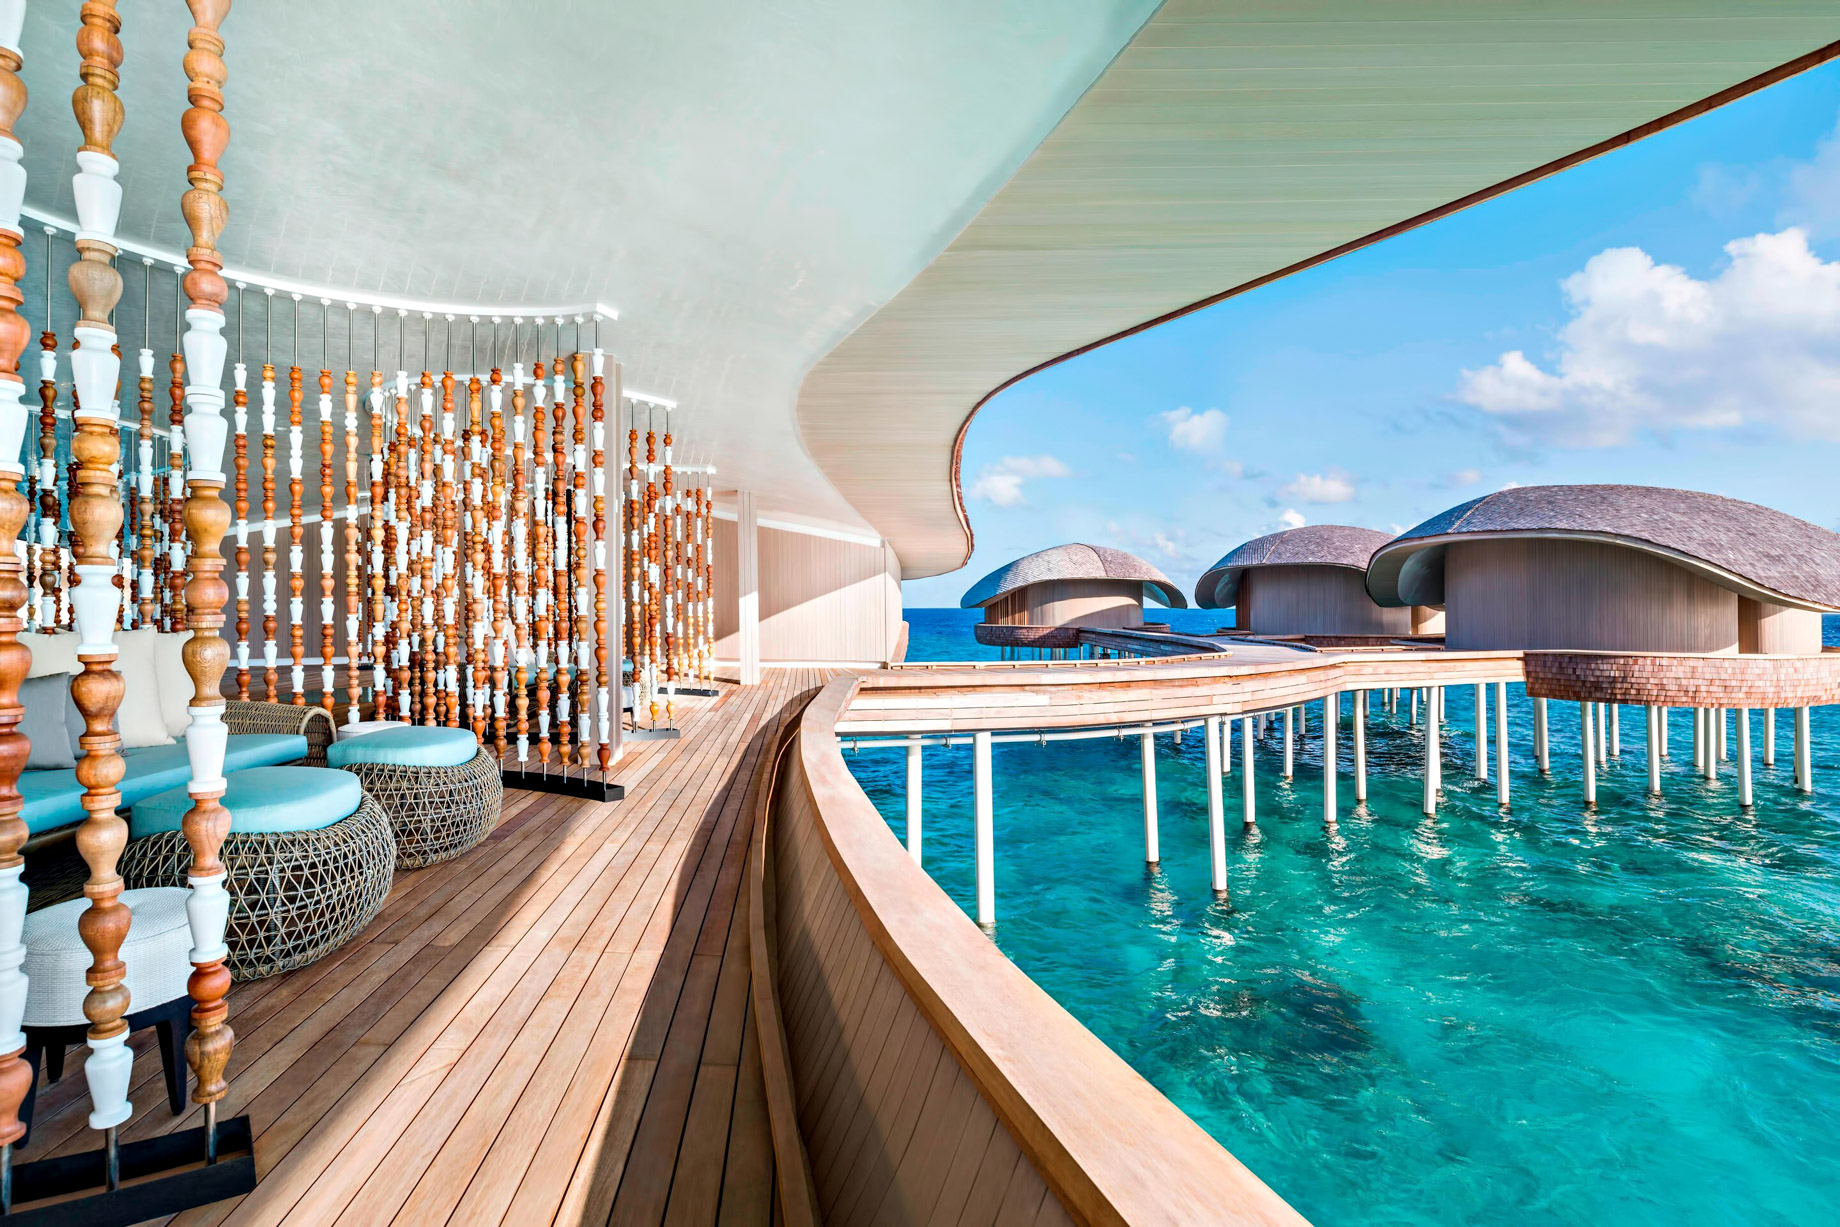 The St. Regis Maldives Vommuli Luxury Resort - Dhaalu Atoll, Maldives - Iridium Spa Treatment Rooms